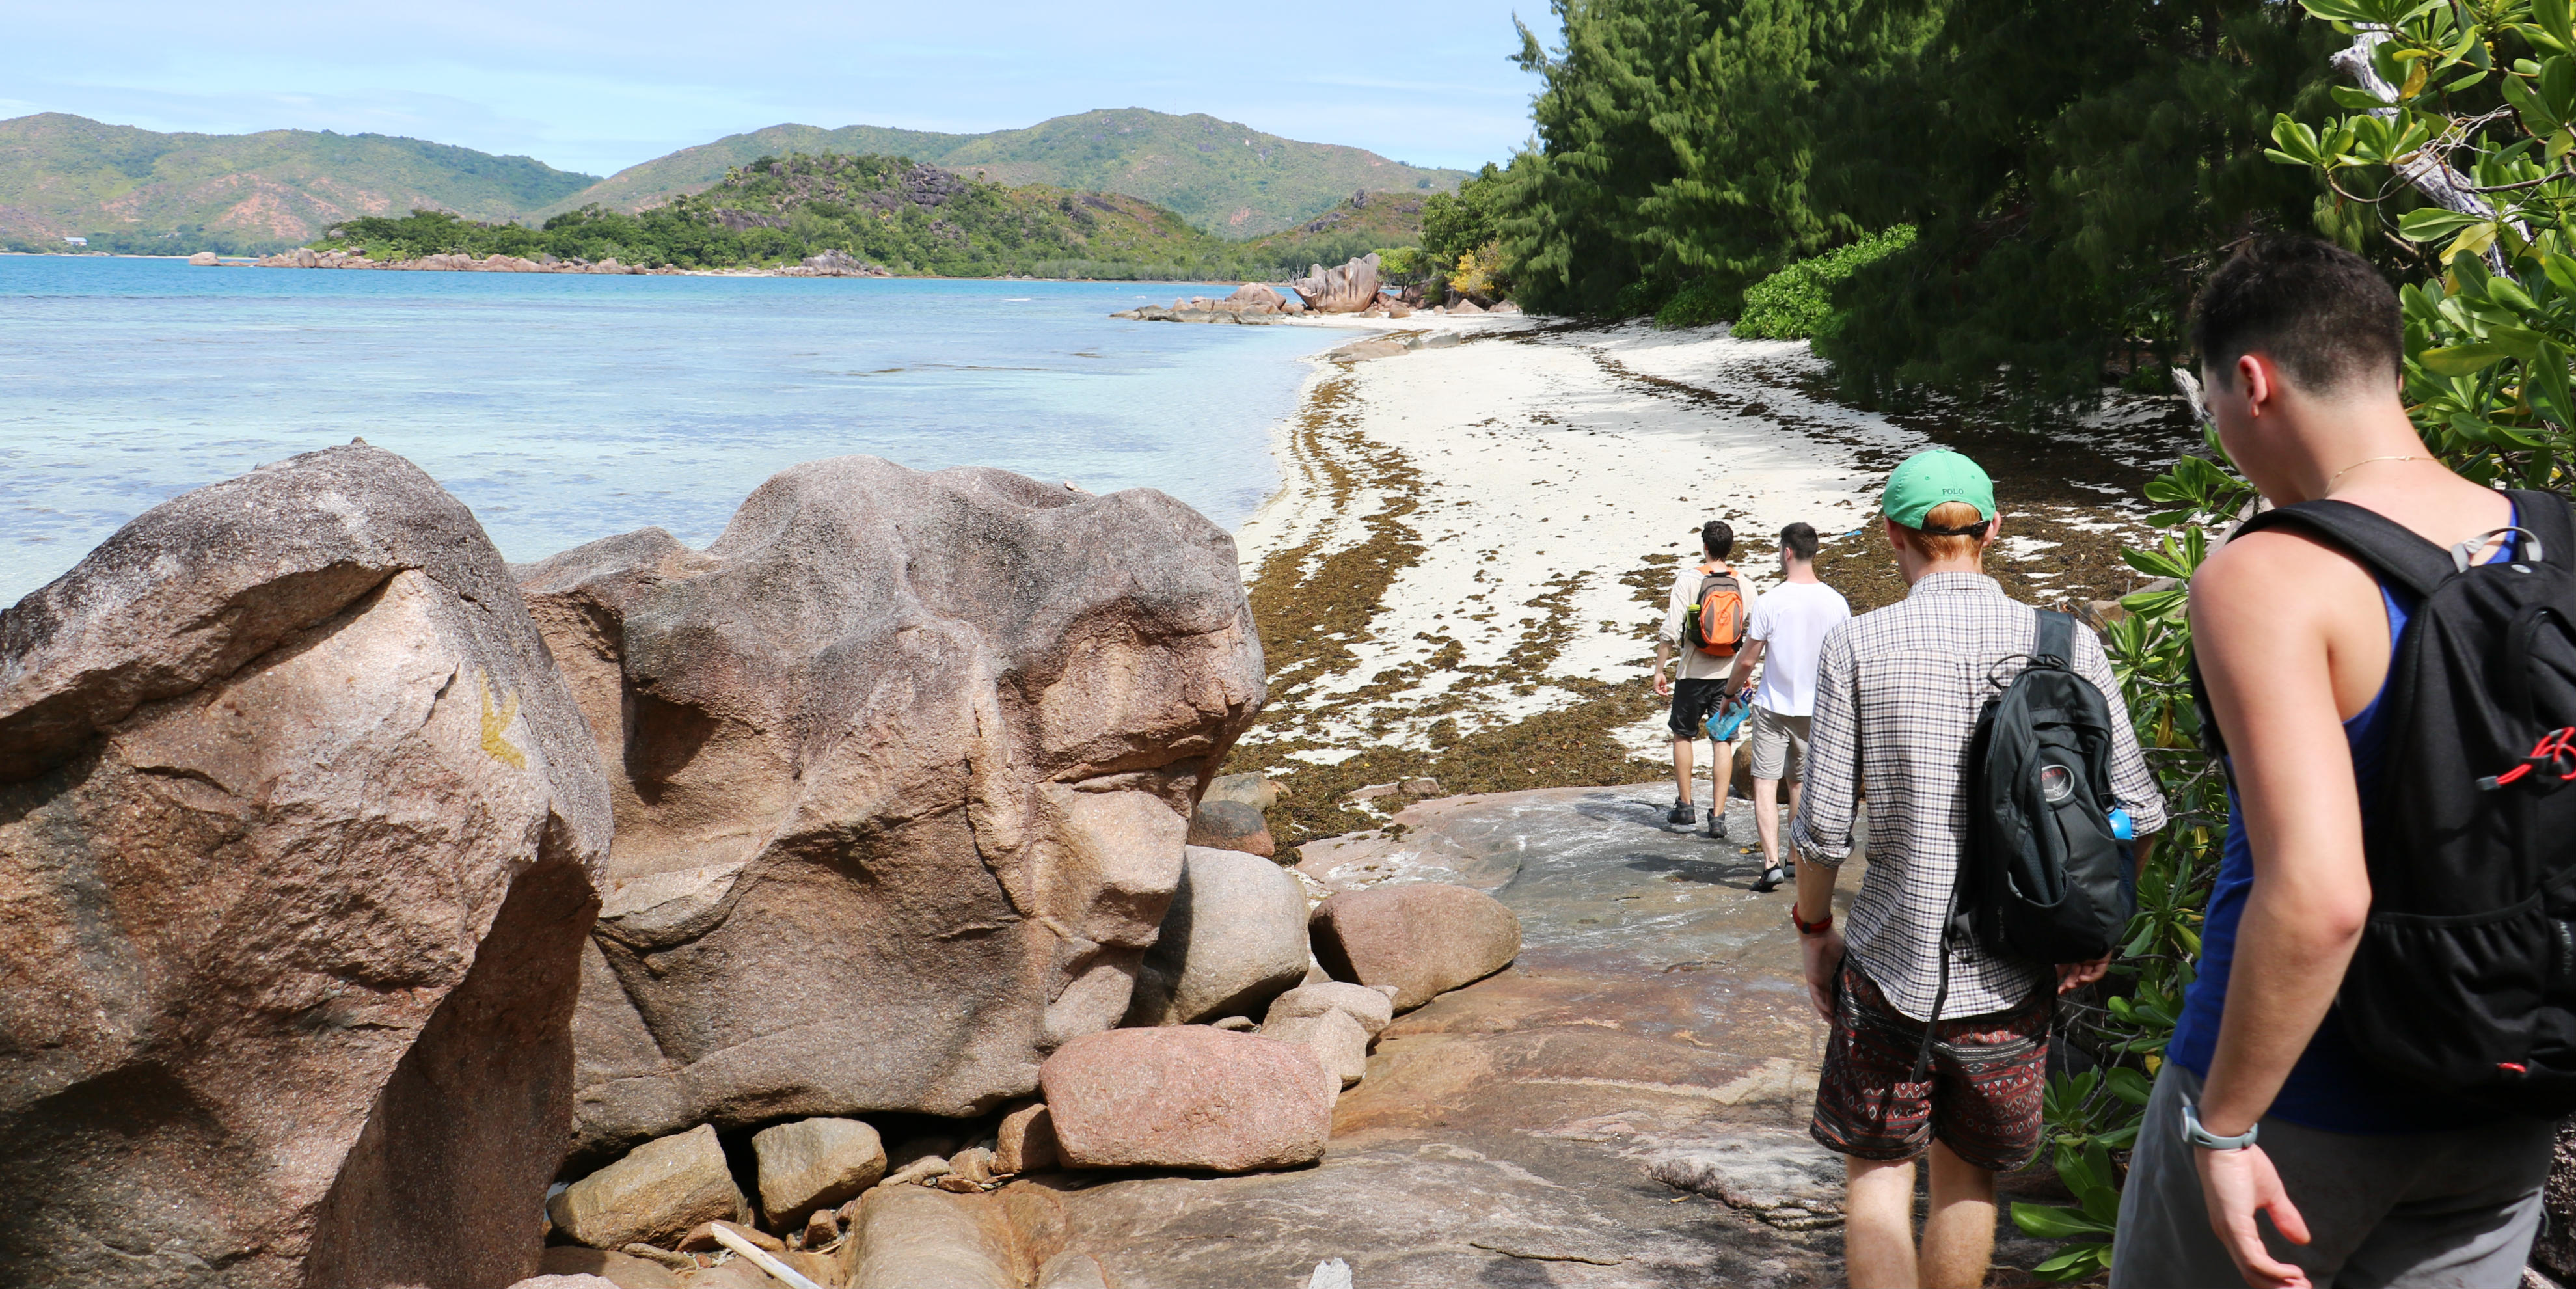 GVI participants enjoy a walk on an island in the Seychelles archipelago.